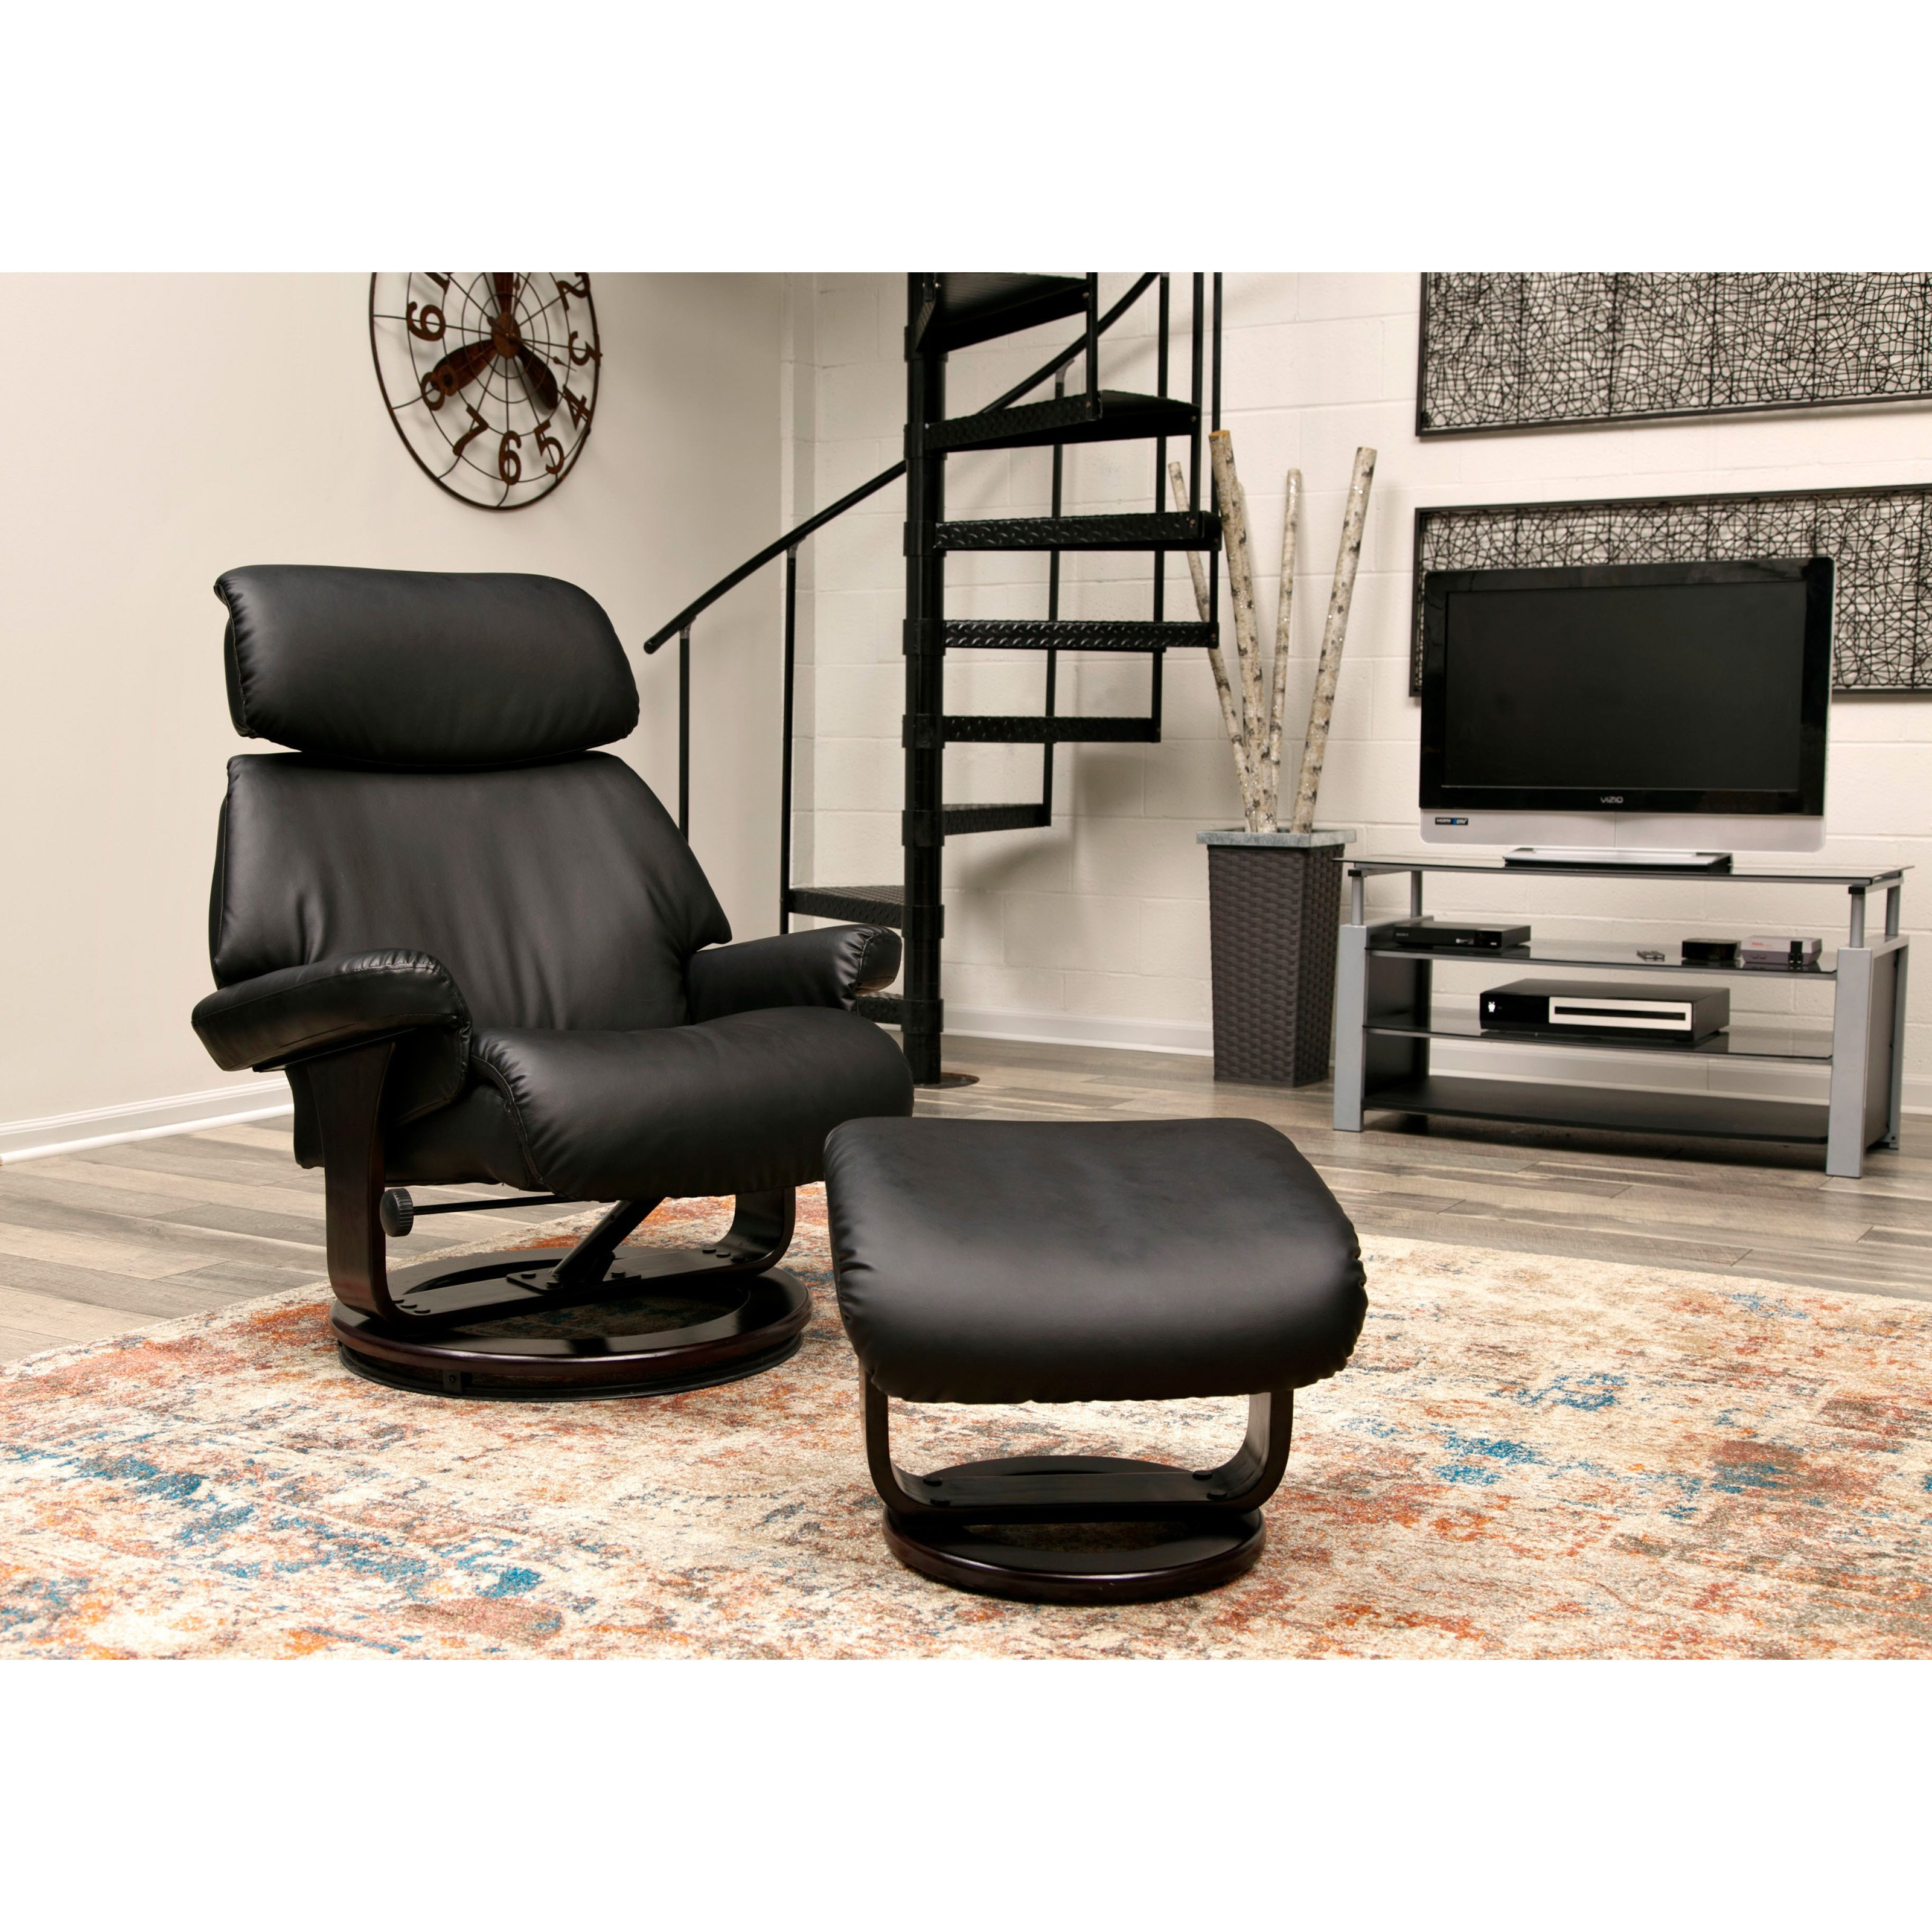 Small Recliners for Bedroom Fresh Relaxzen Classic Bonded Leather Recliner with Ottoman